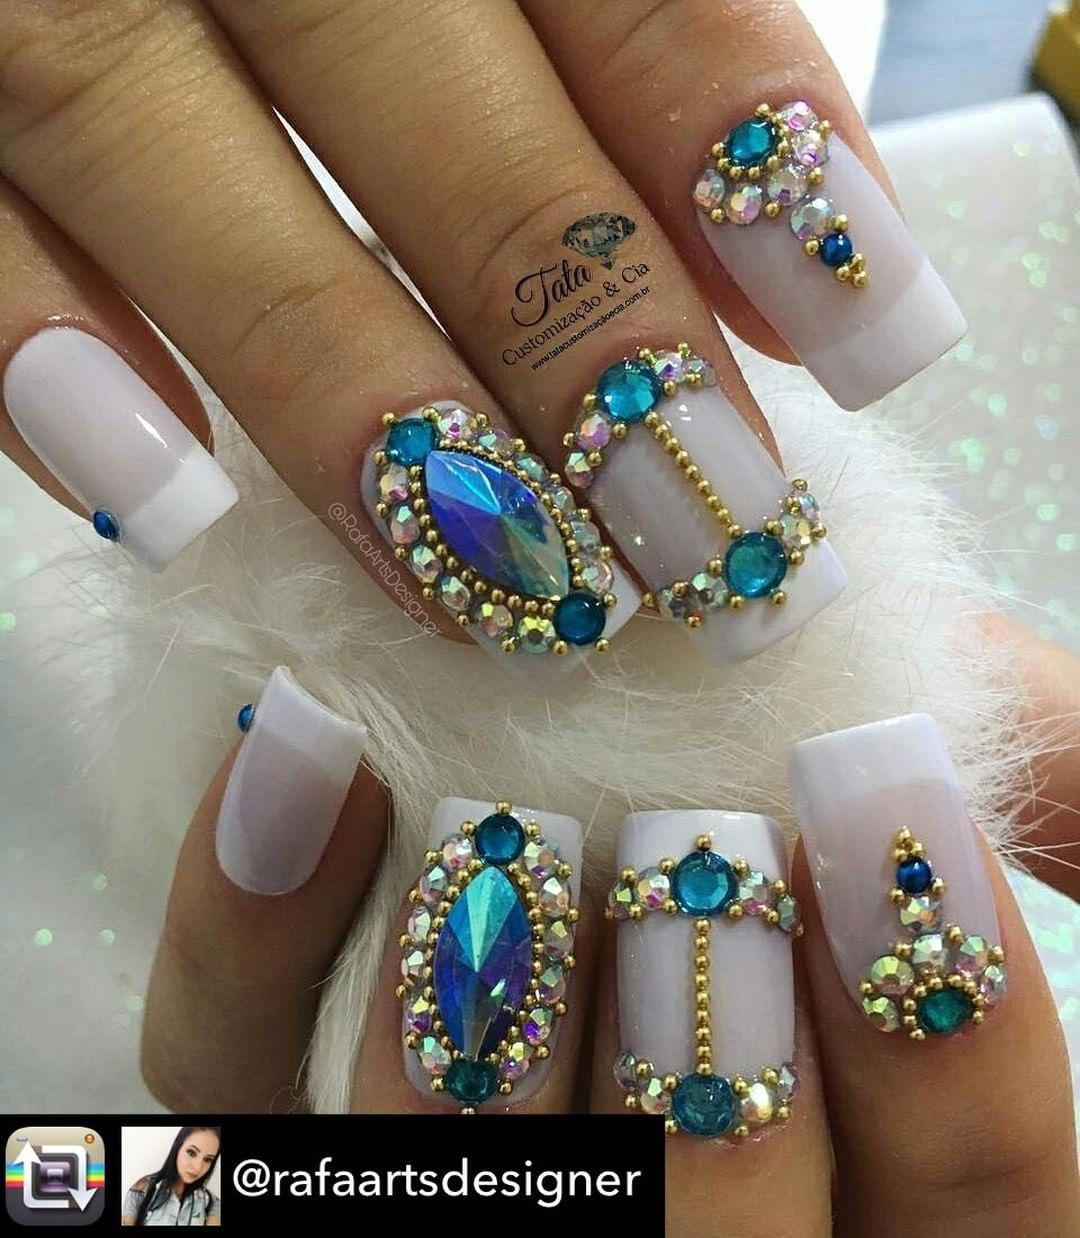 Pin by Deise Muller on ADESIVOS/JOIAS | Pinterest | Manicure ...